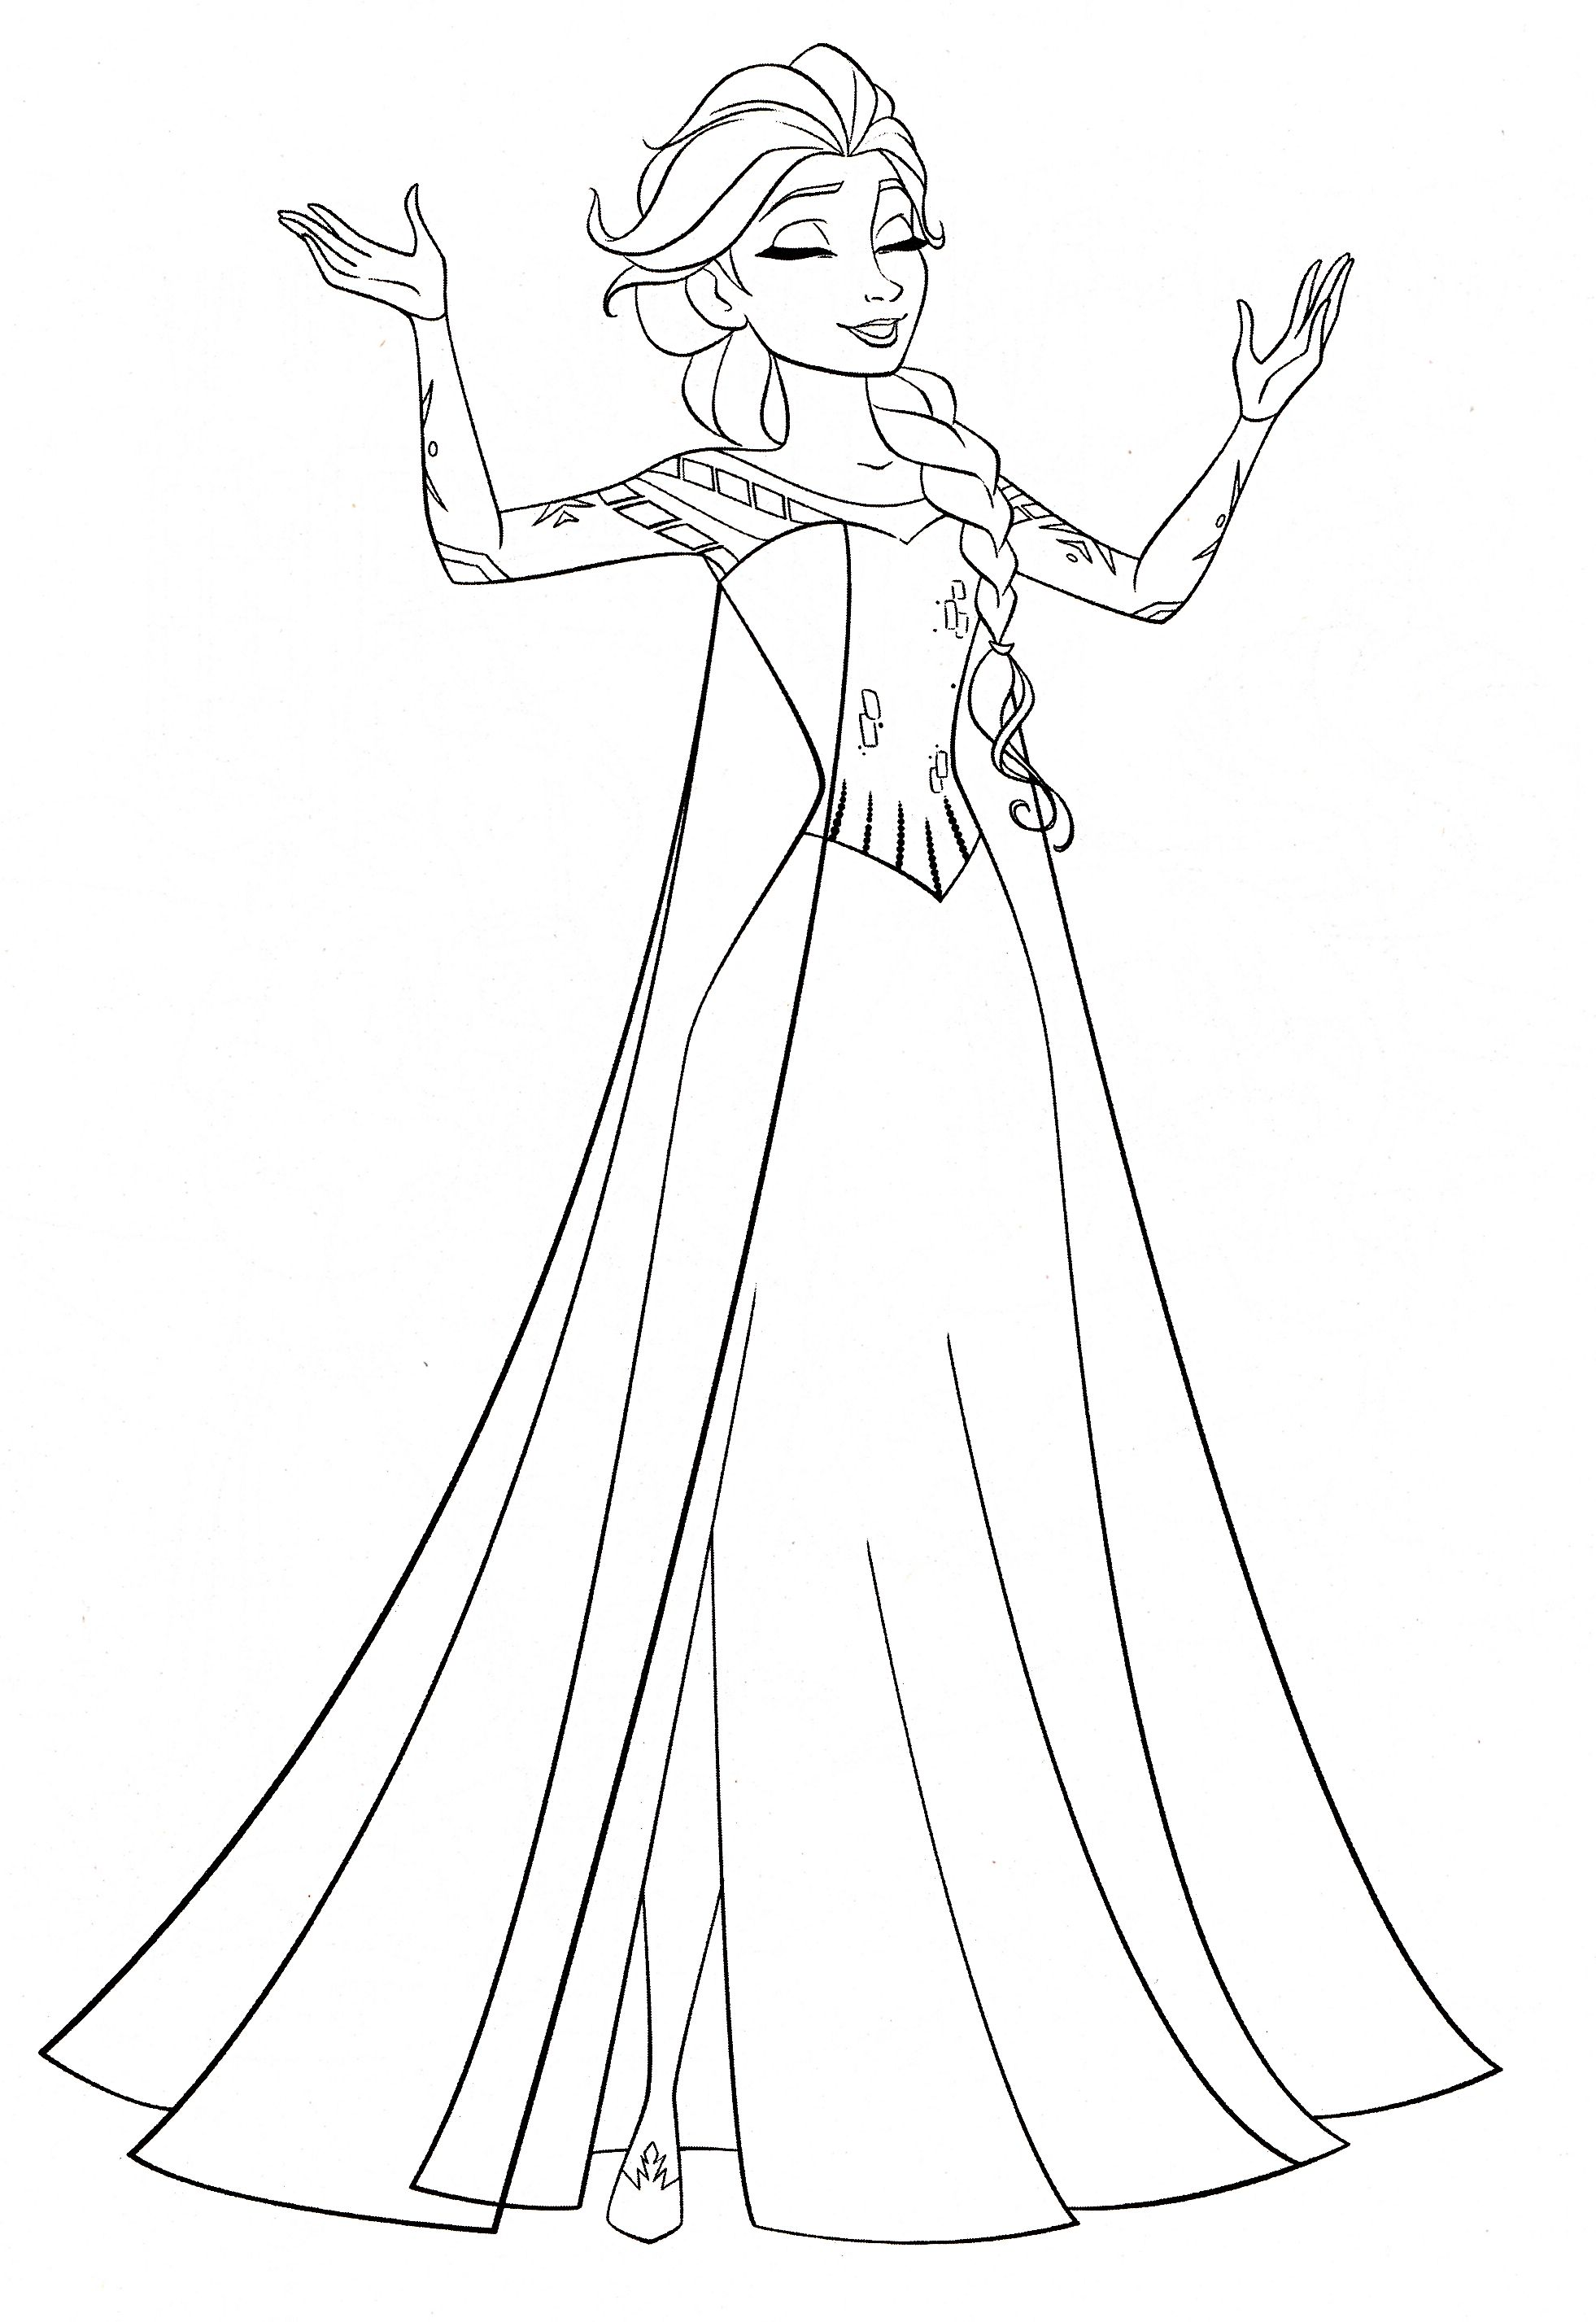 Walt Disney Characters Photo Walt Disney Coloring Pages Queen Elsa Disney Princess Coloring Pages Elsa Coloring Pages Frozen Coloring Pages